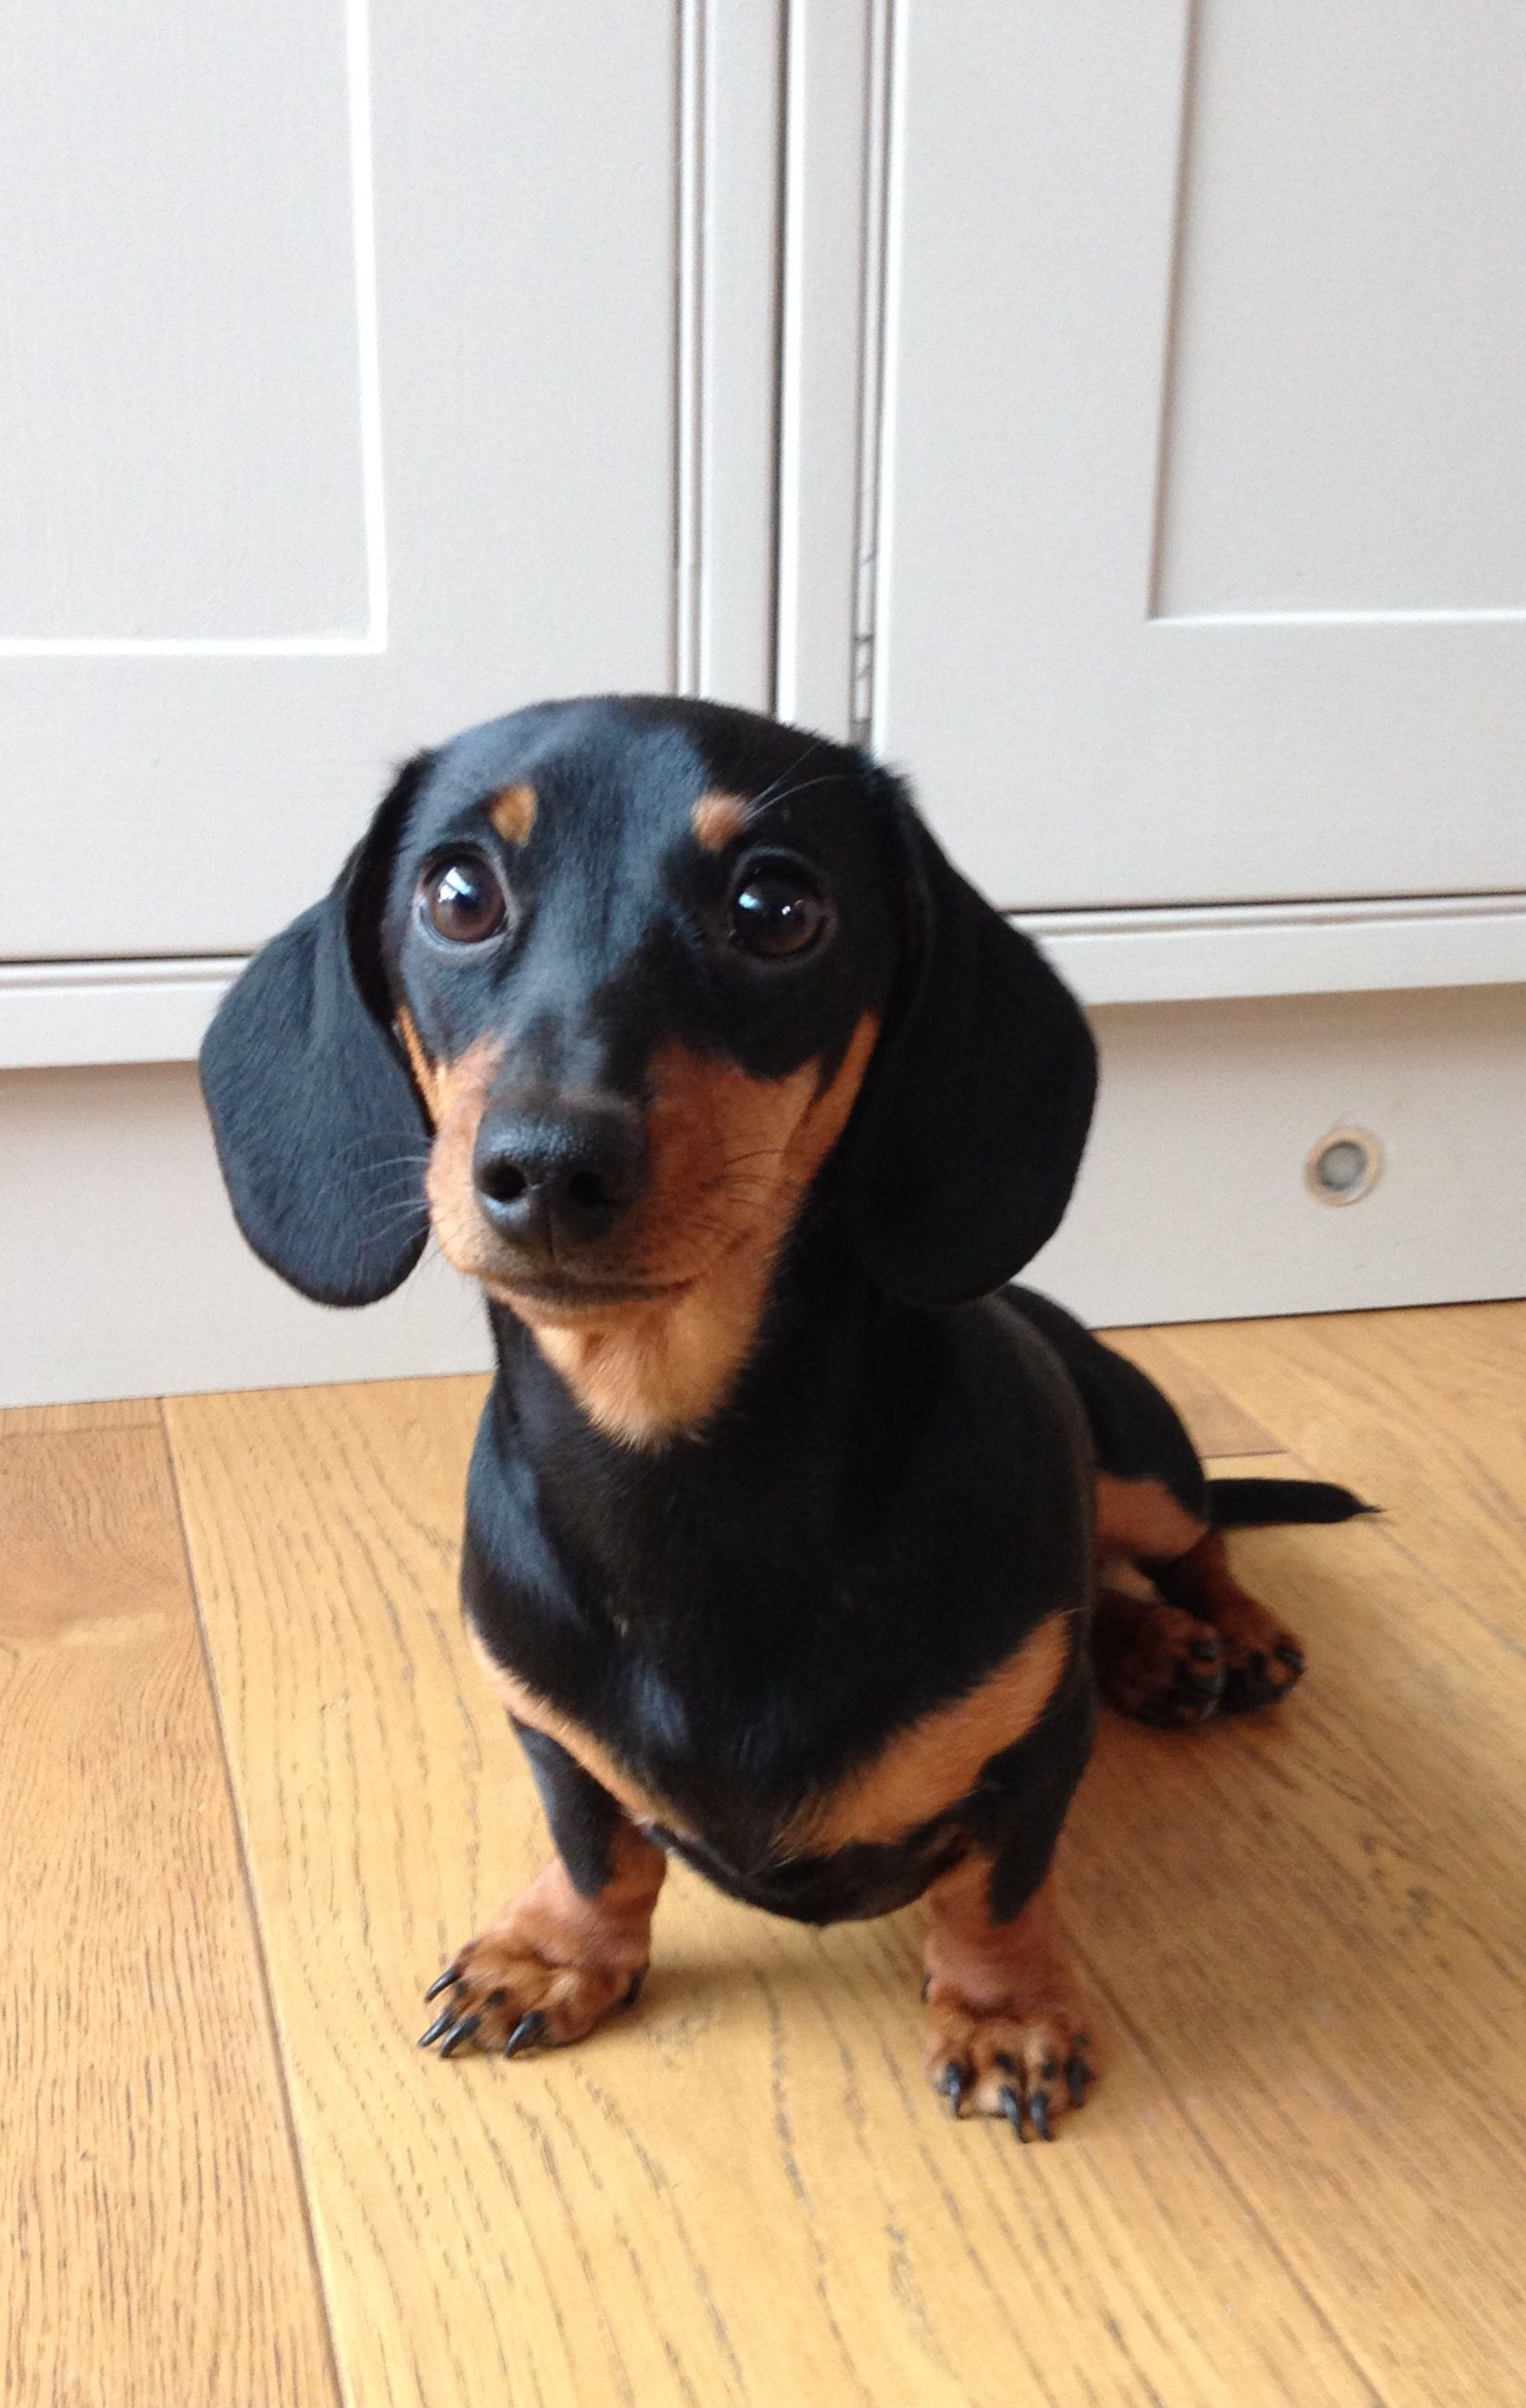 Come And Meet The Resident Dachshund At The Cotswold Craft Room